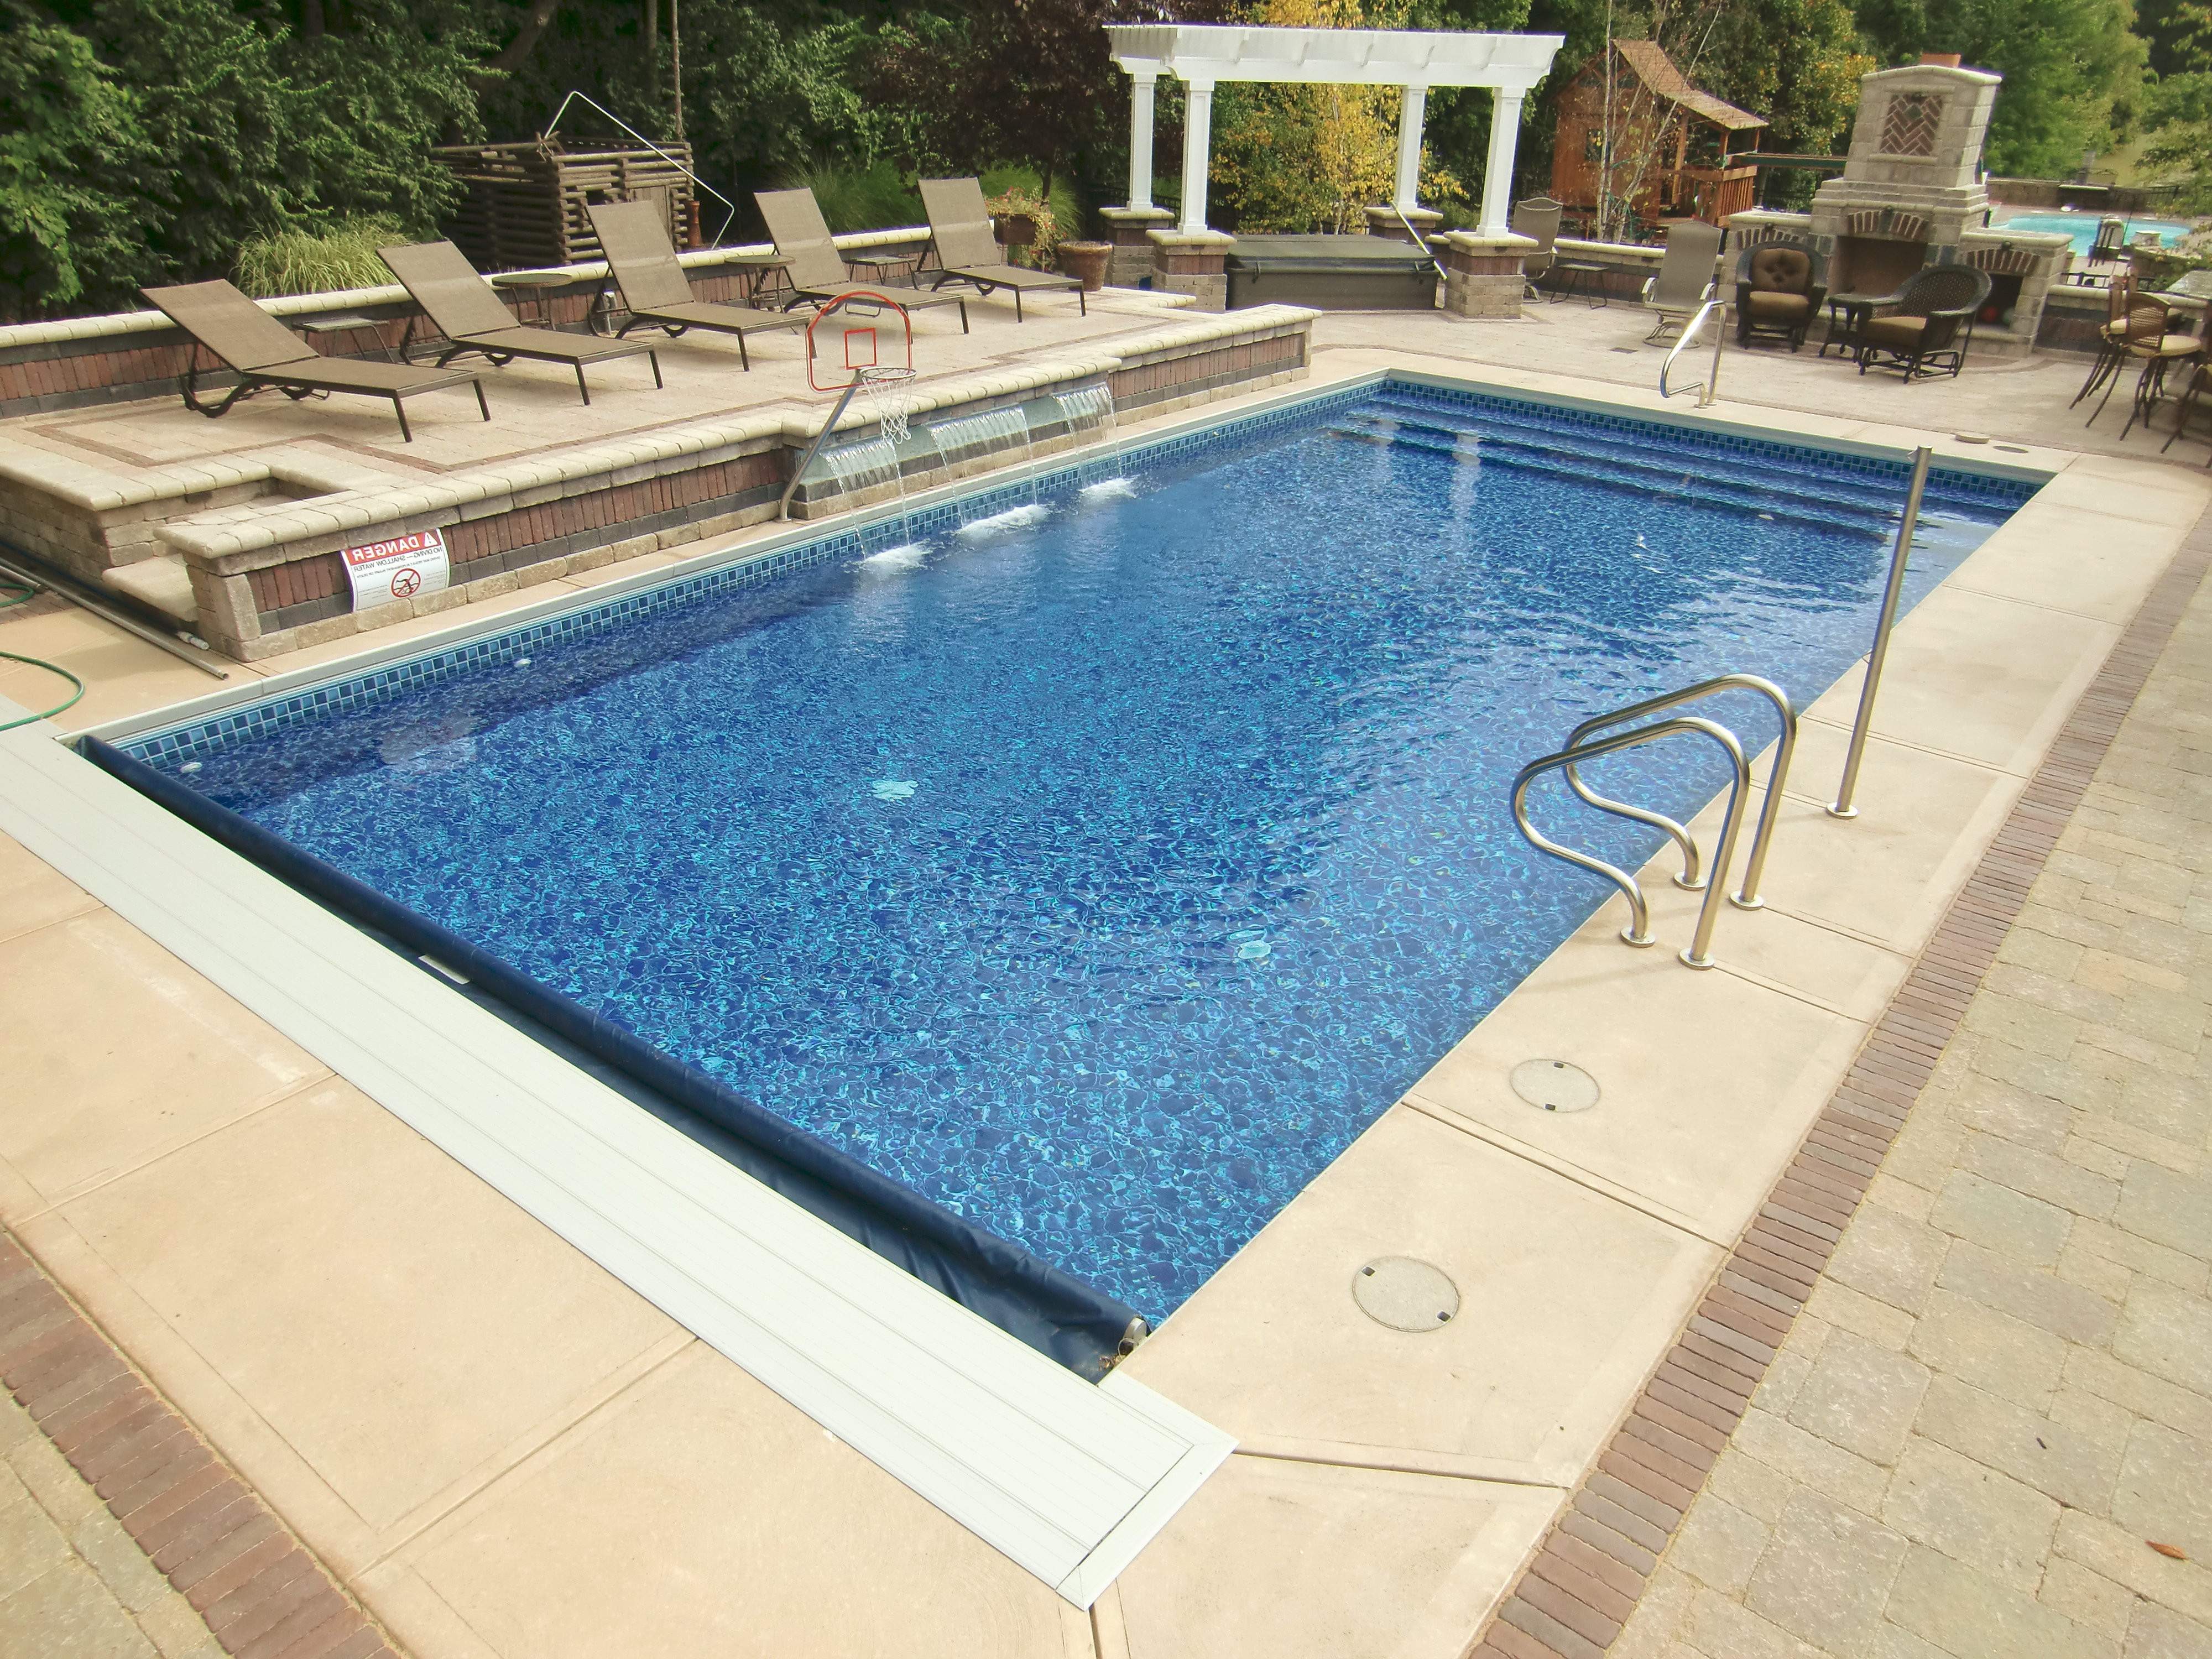 Best ideas about Vinyl Inground Pool . Save or Pin Vinyl Liner Pool Features Now.